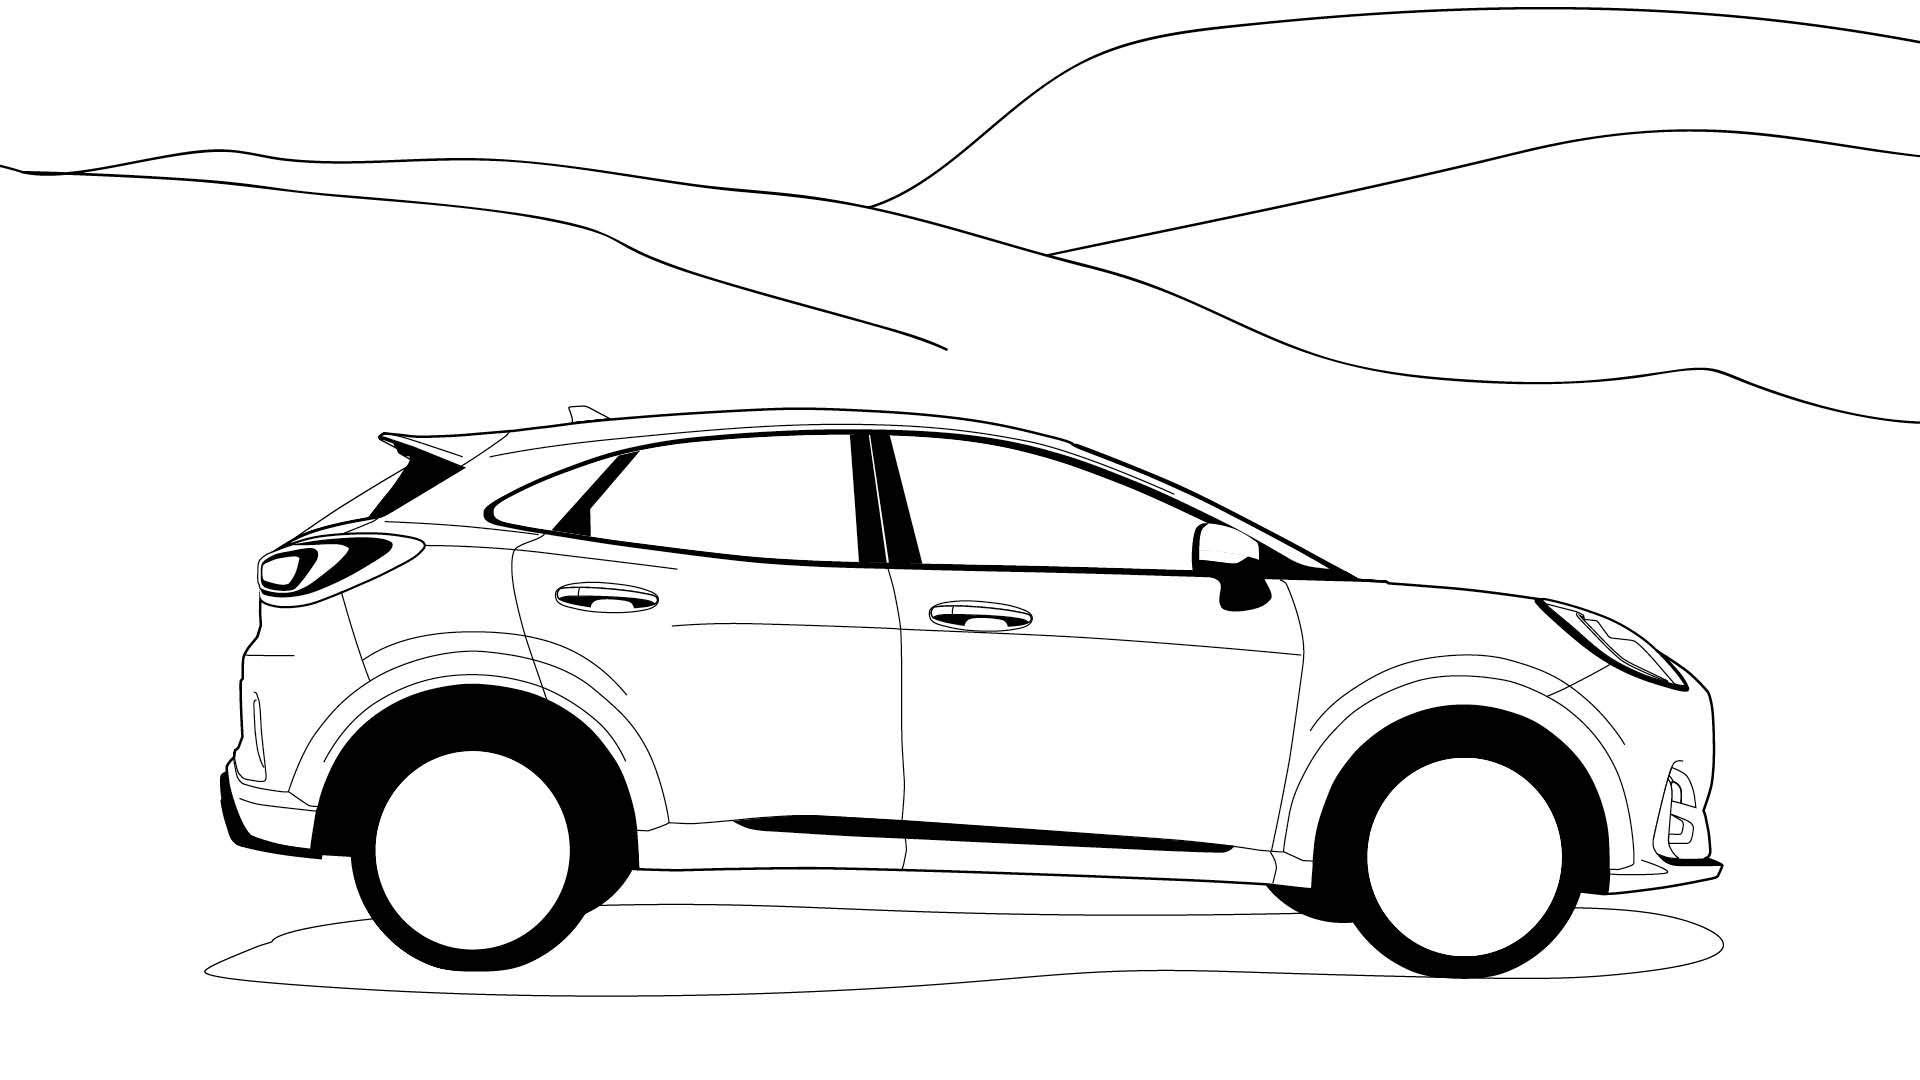 Ford Stay Home Puma colouring in poster